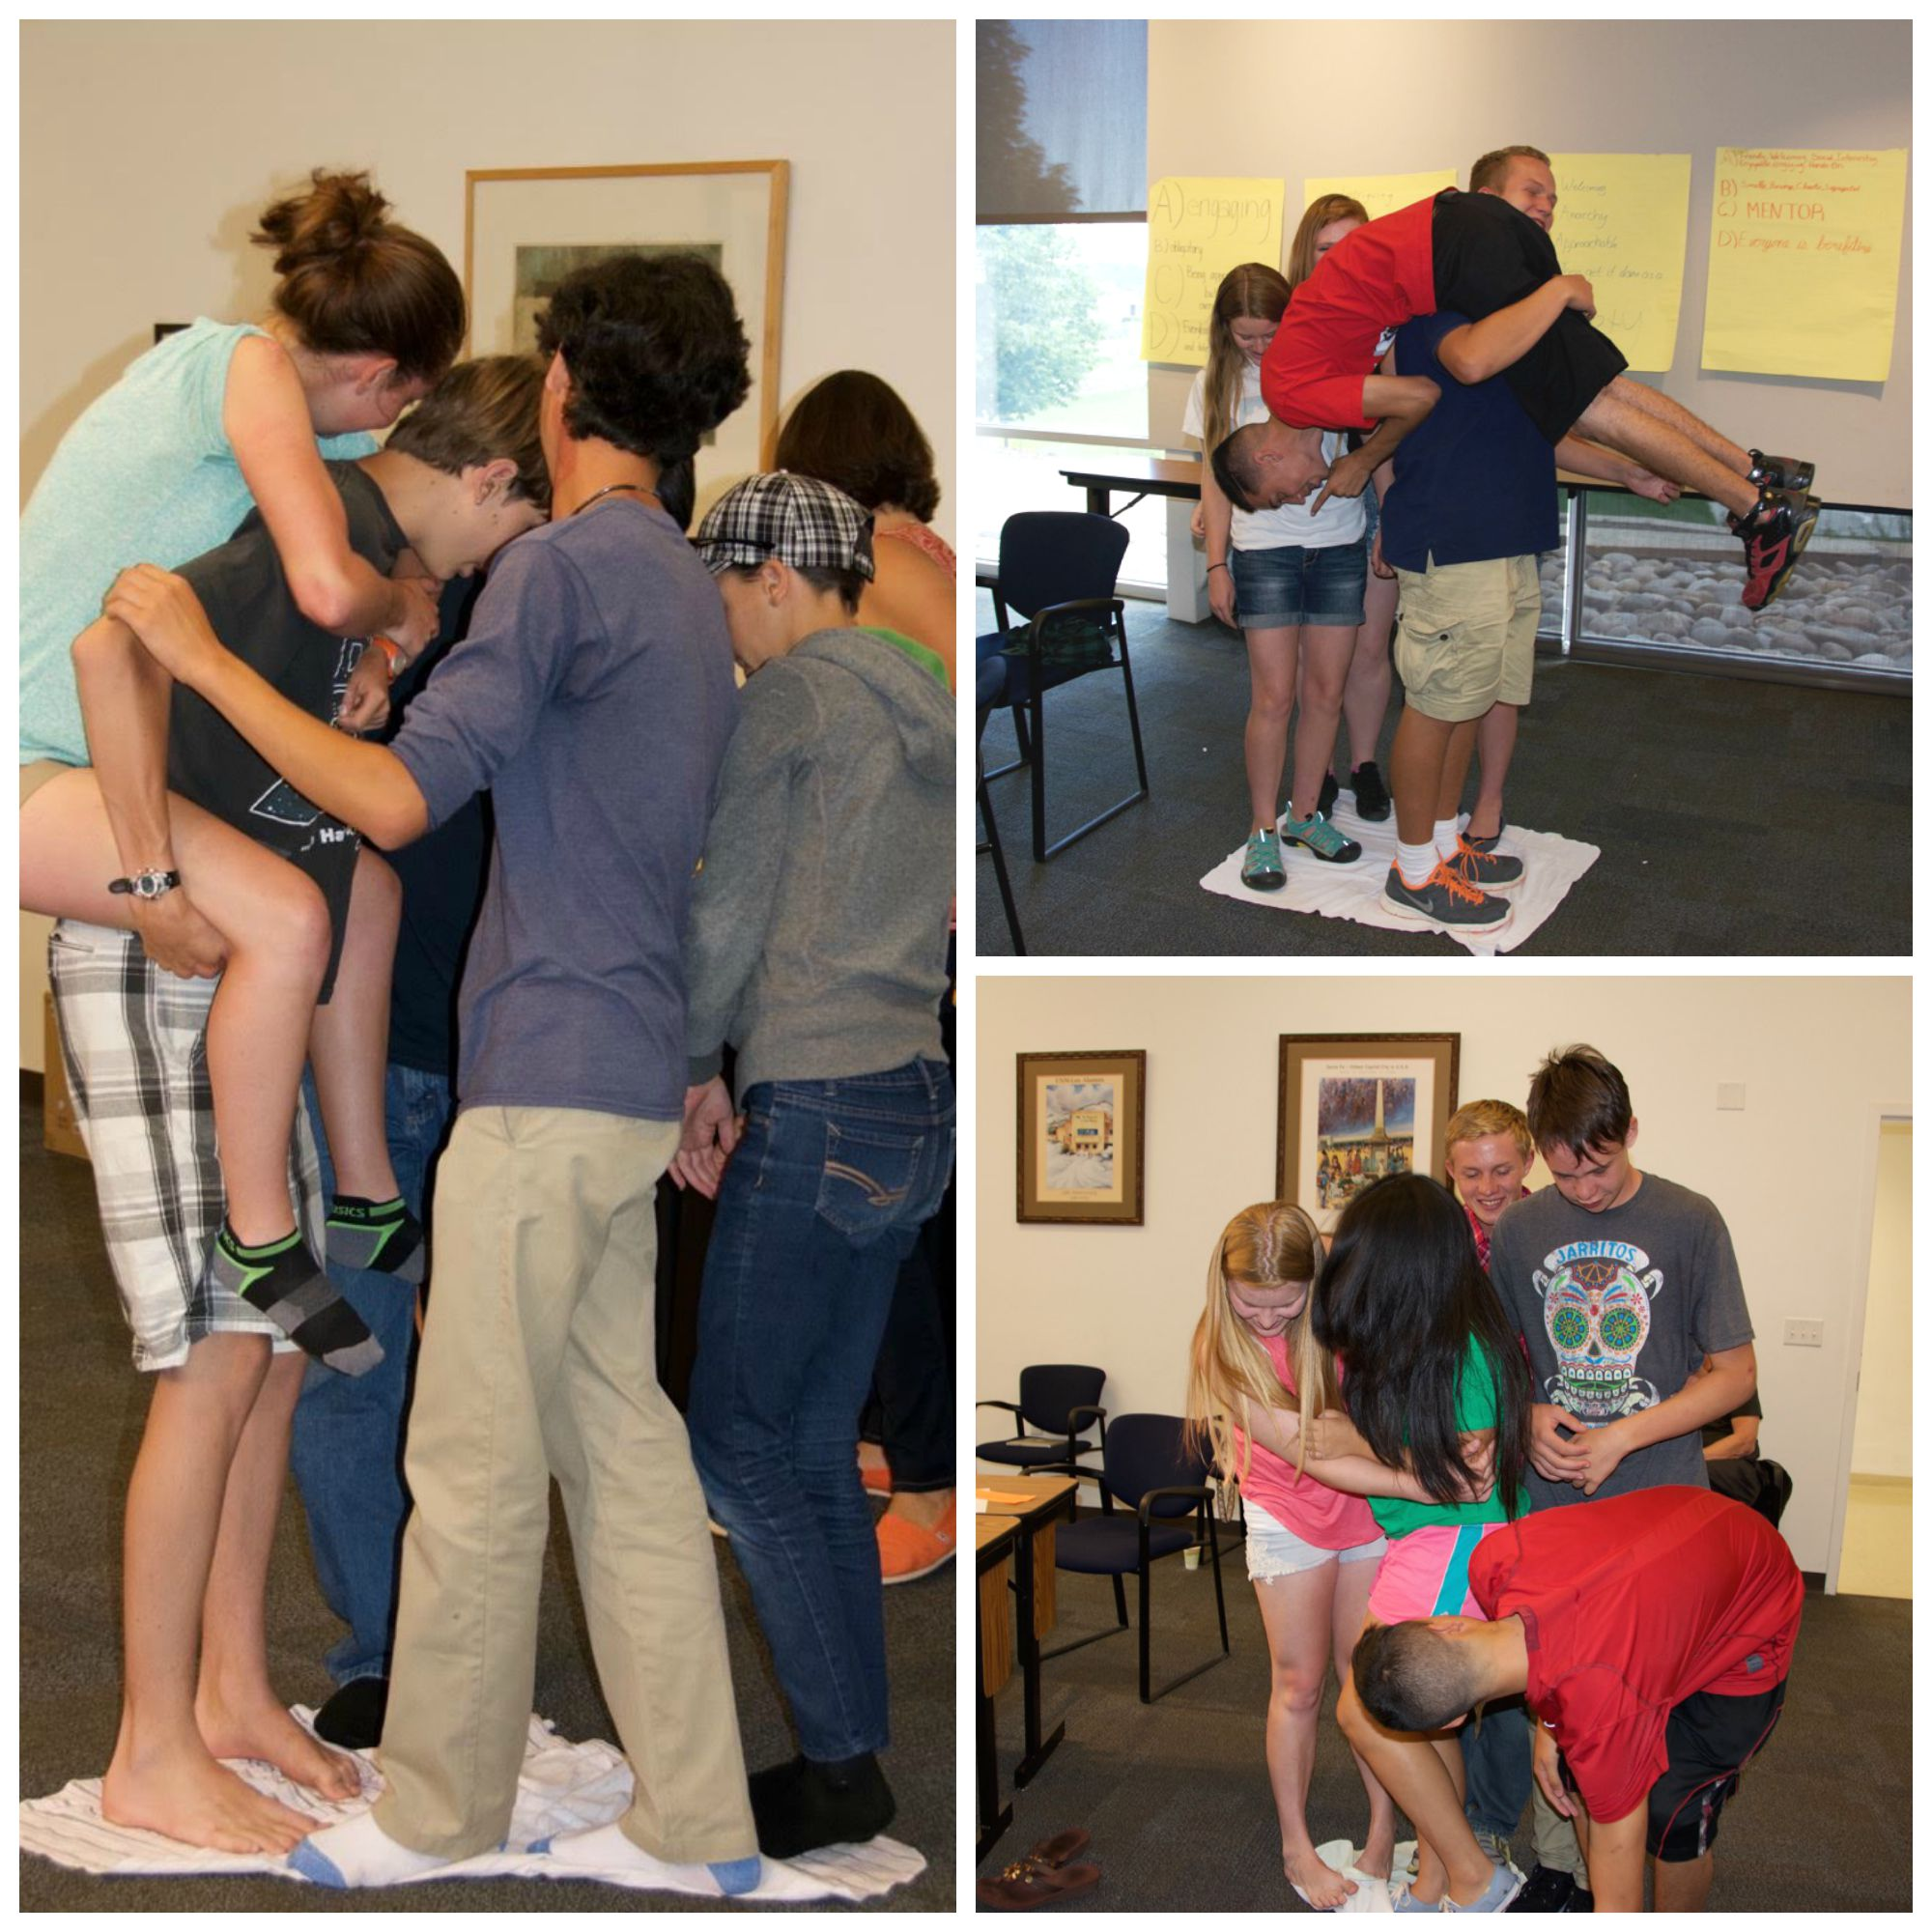 Teens get creative when space is cramped!